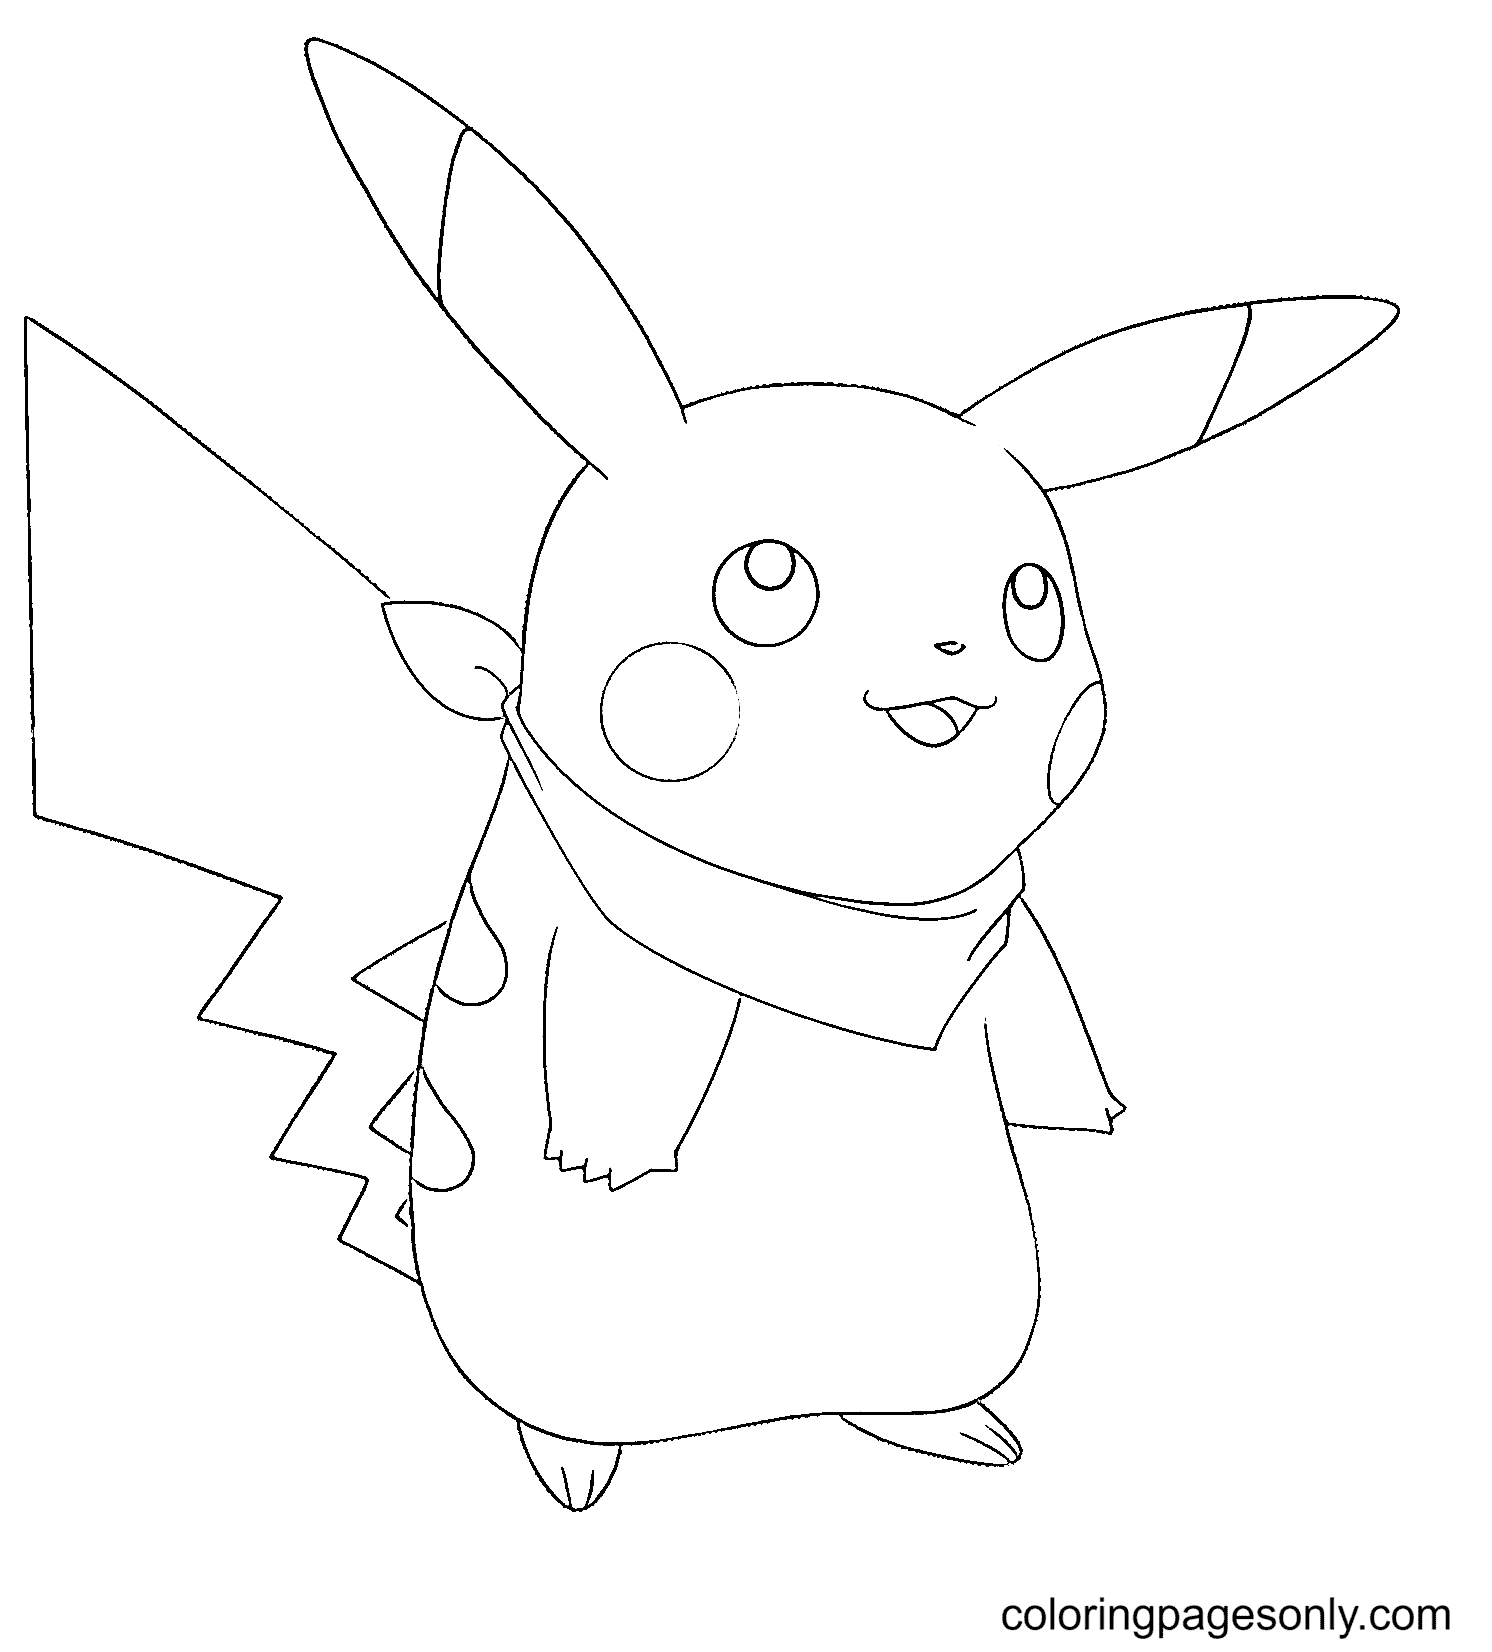 Pikachu Wearing a Scarf Coloring Page